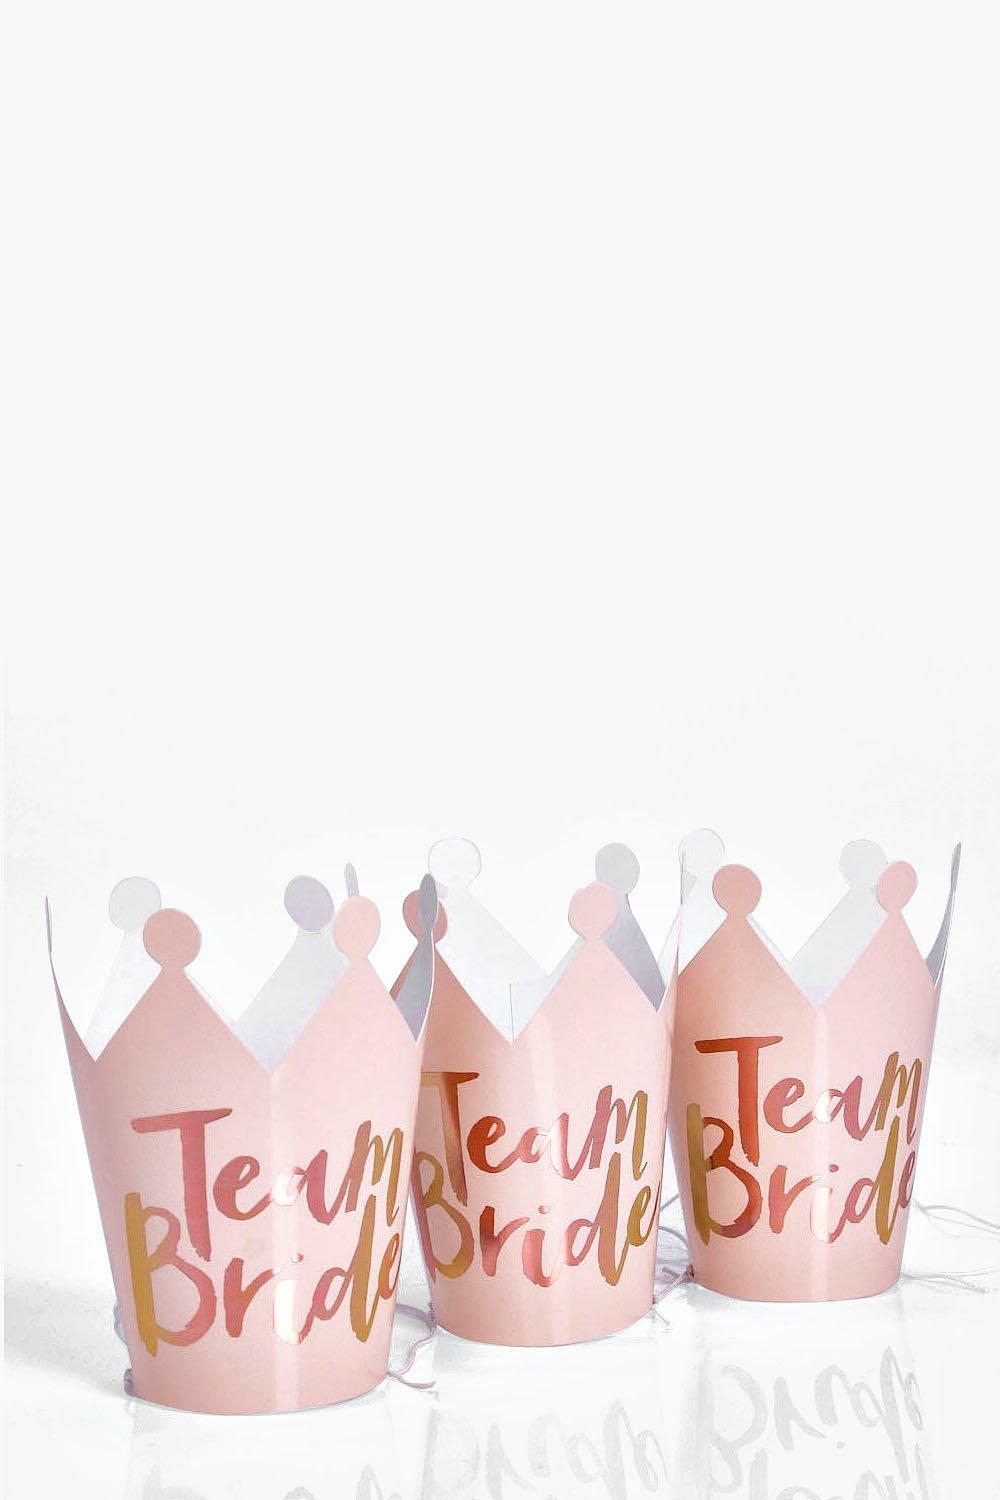 Bride Hen Party Crowns 5 Pack - rose gold - Team B